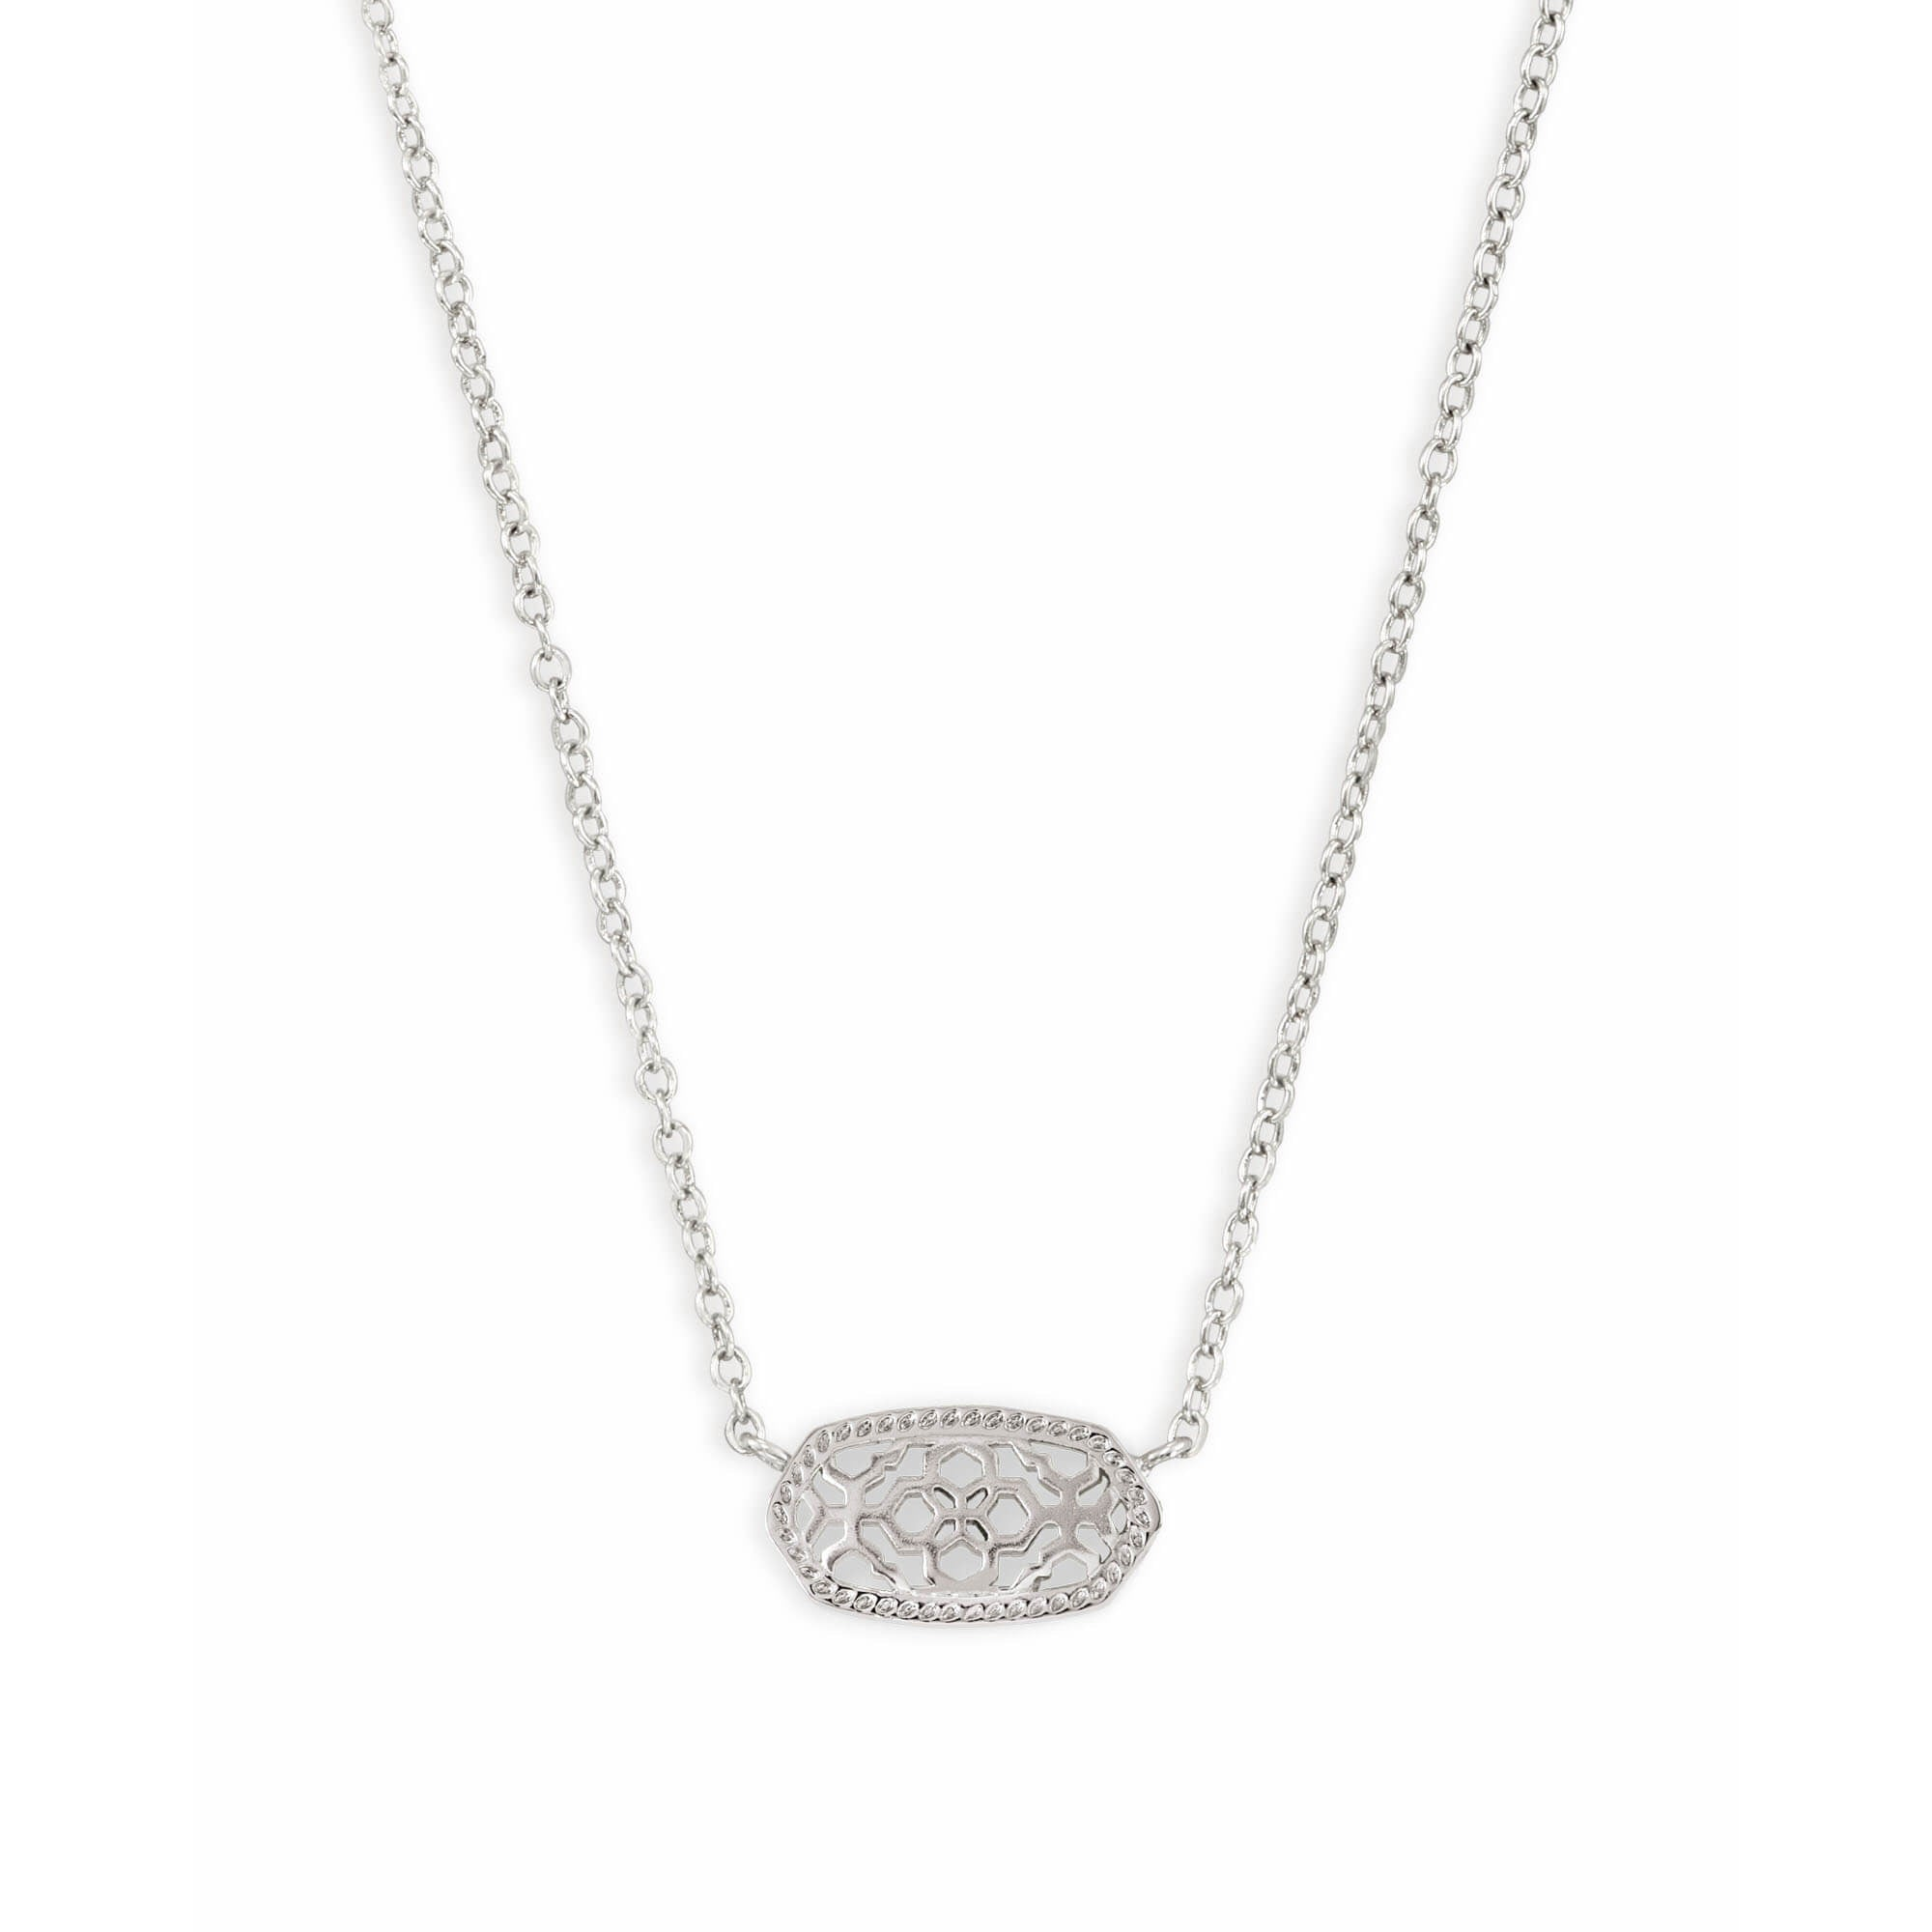 Kendra Scott - Elisa Silver Pendant Necklace in Silver Filigree, Front View